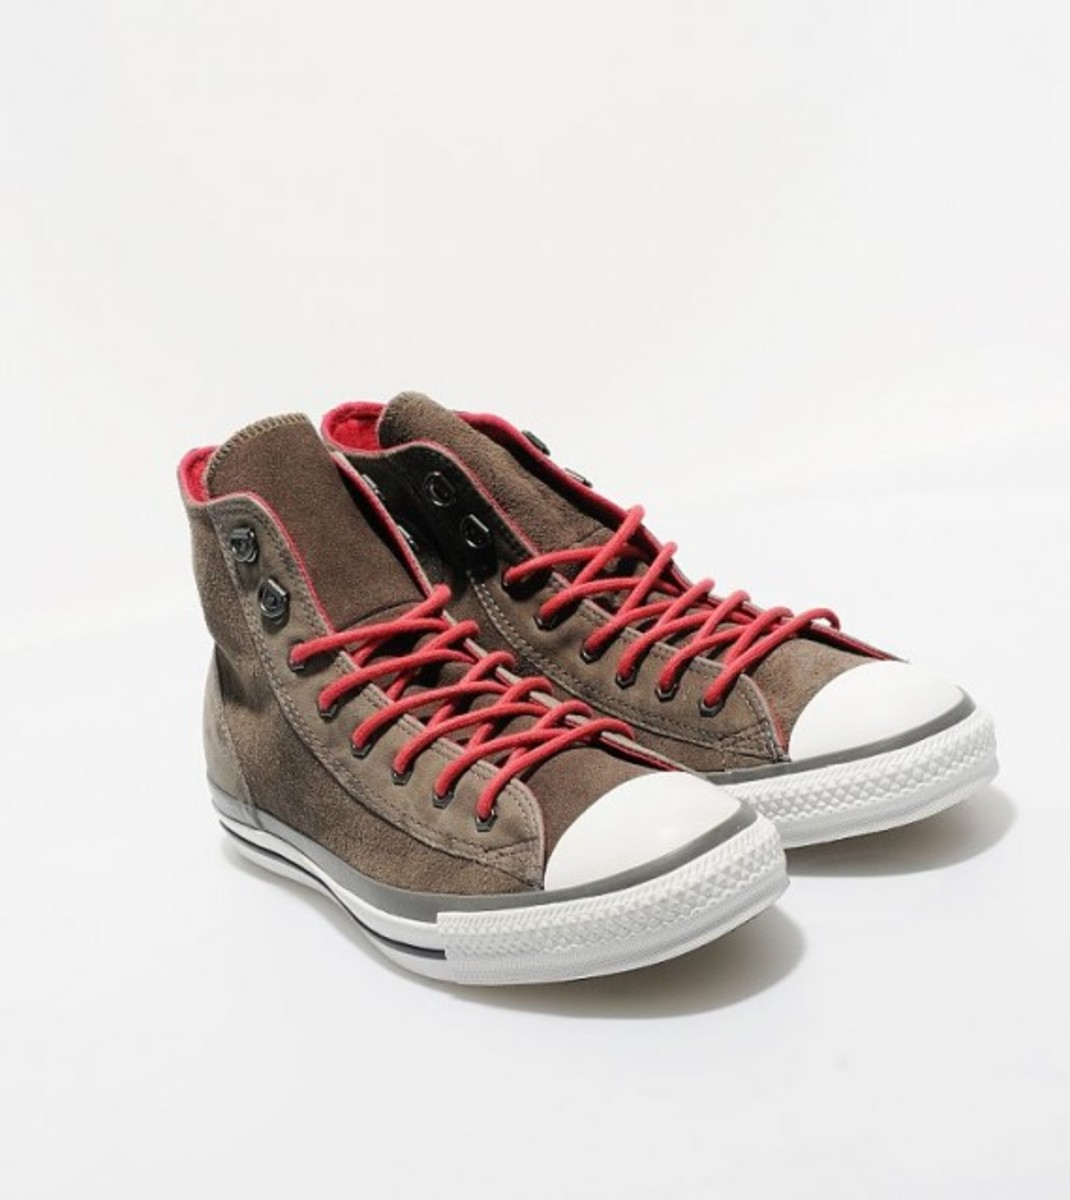 15253306a6df CONVERSE Chuck Taylor All Star Hi - Suede Hiking Boot - Freshness Mag